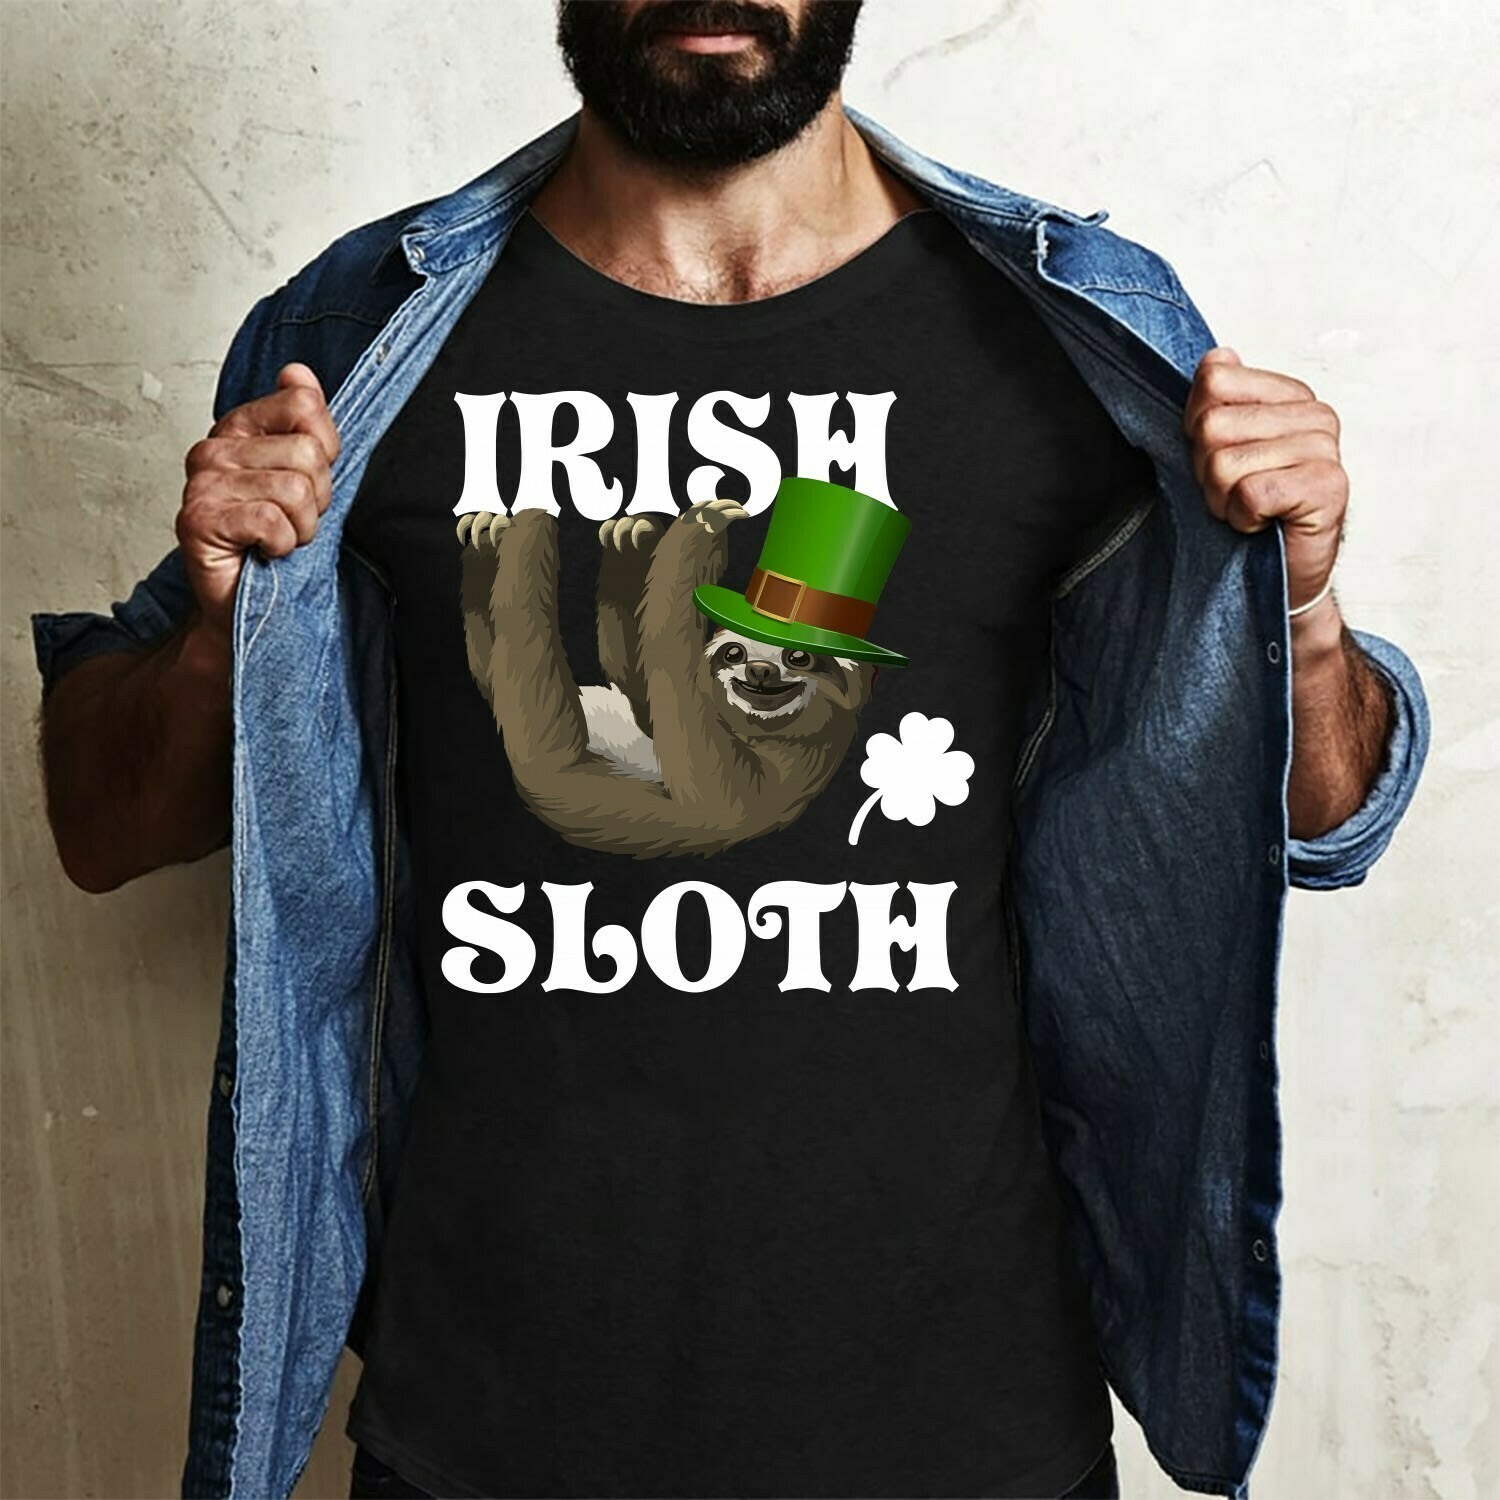 Irish Sloth Funny St Patrick's Day,Napping Lazy Cute Sloth Funny Leprechaun Shamrock Green Clover  T-Shirt Hoodie Sweatshirt Sweater Tee Kids Youth Gifts Jolly Family Gifts